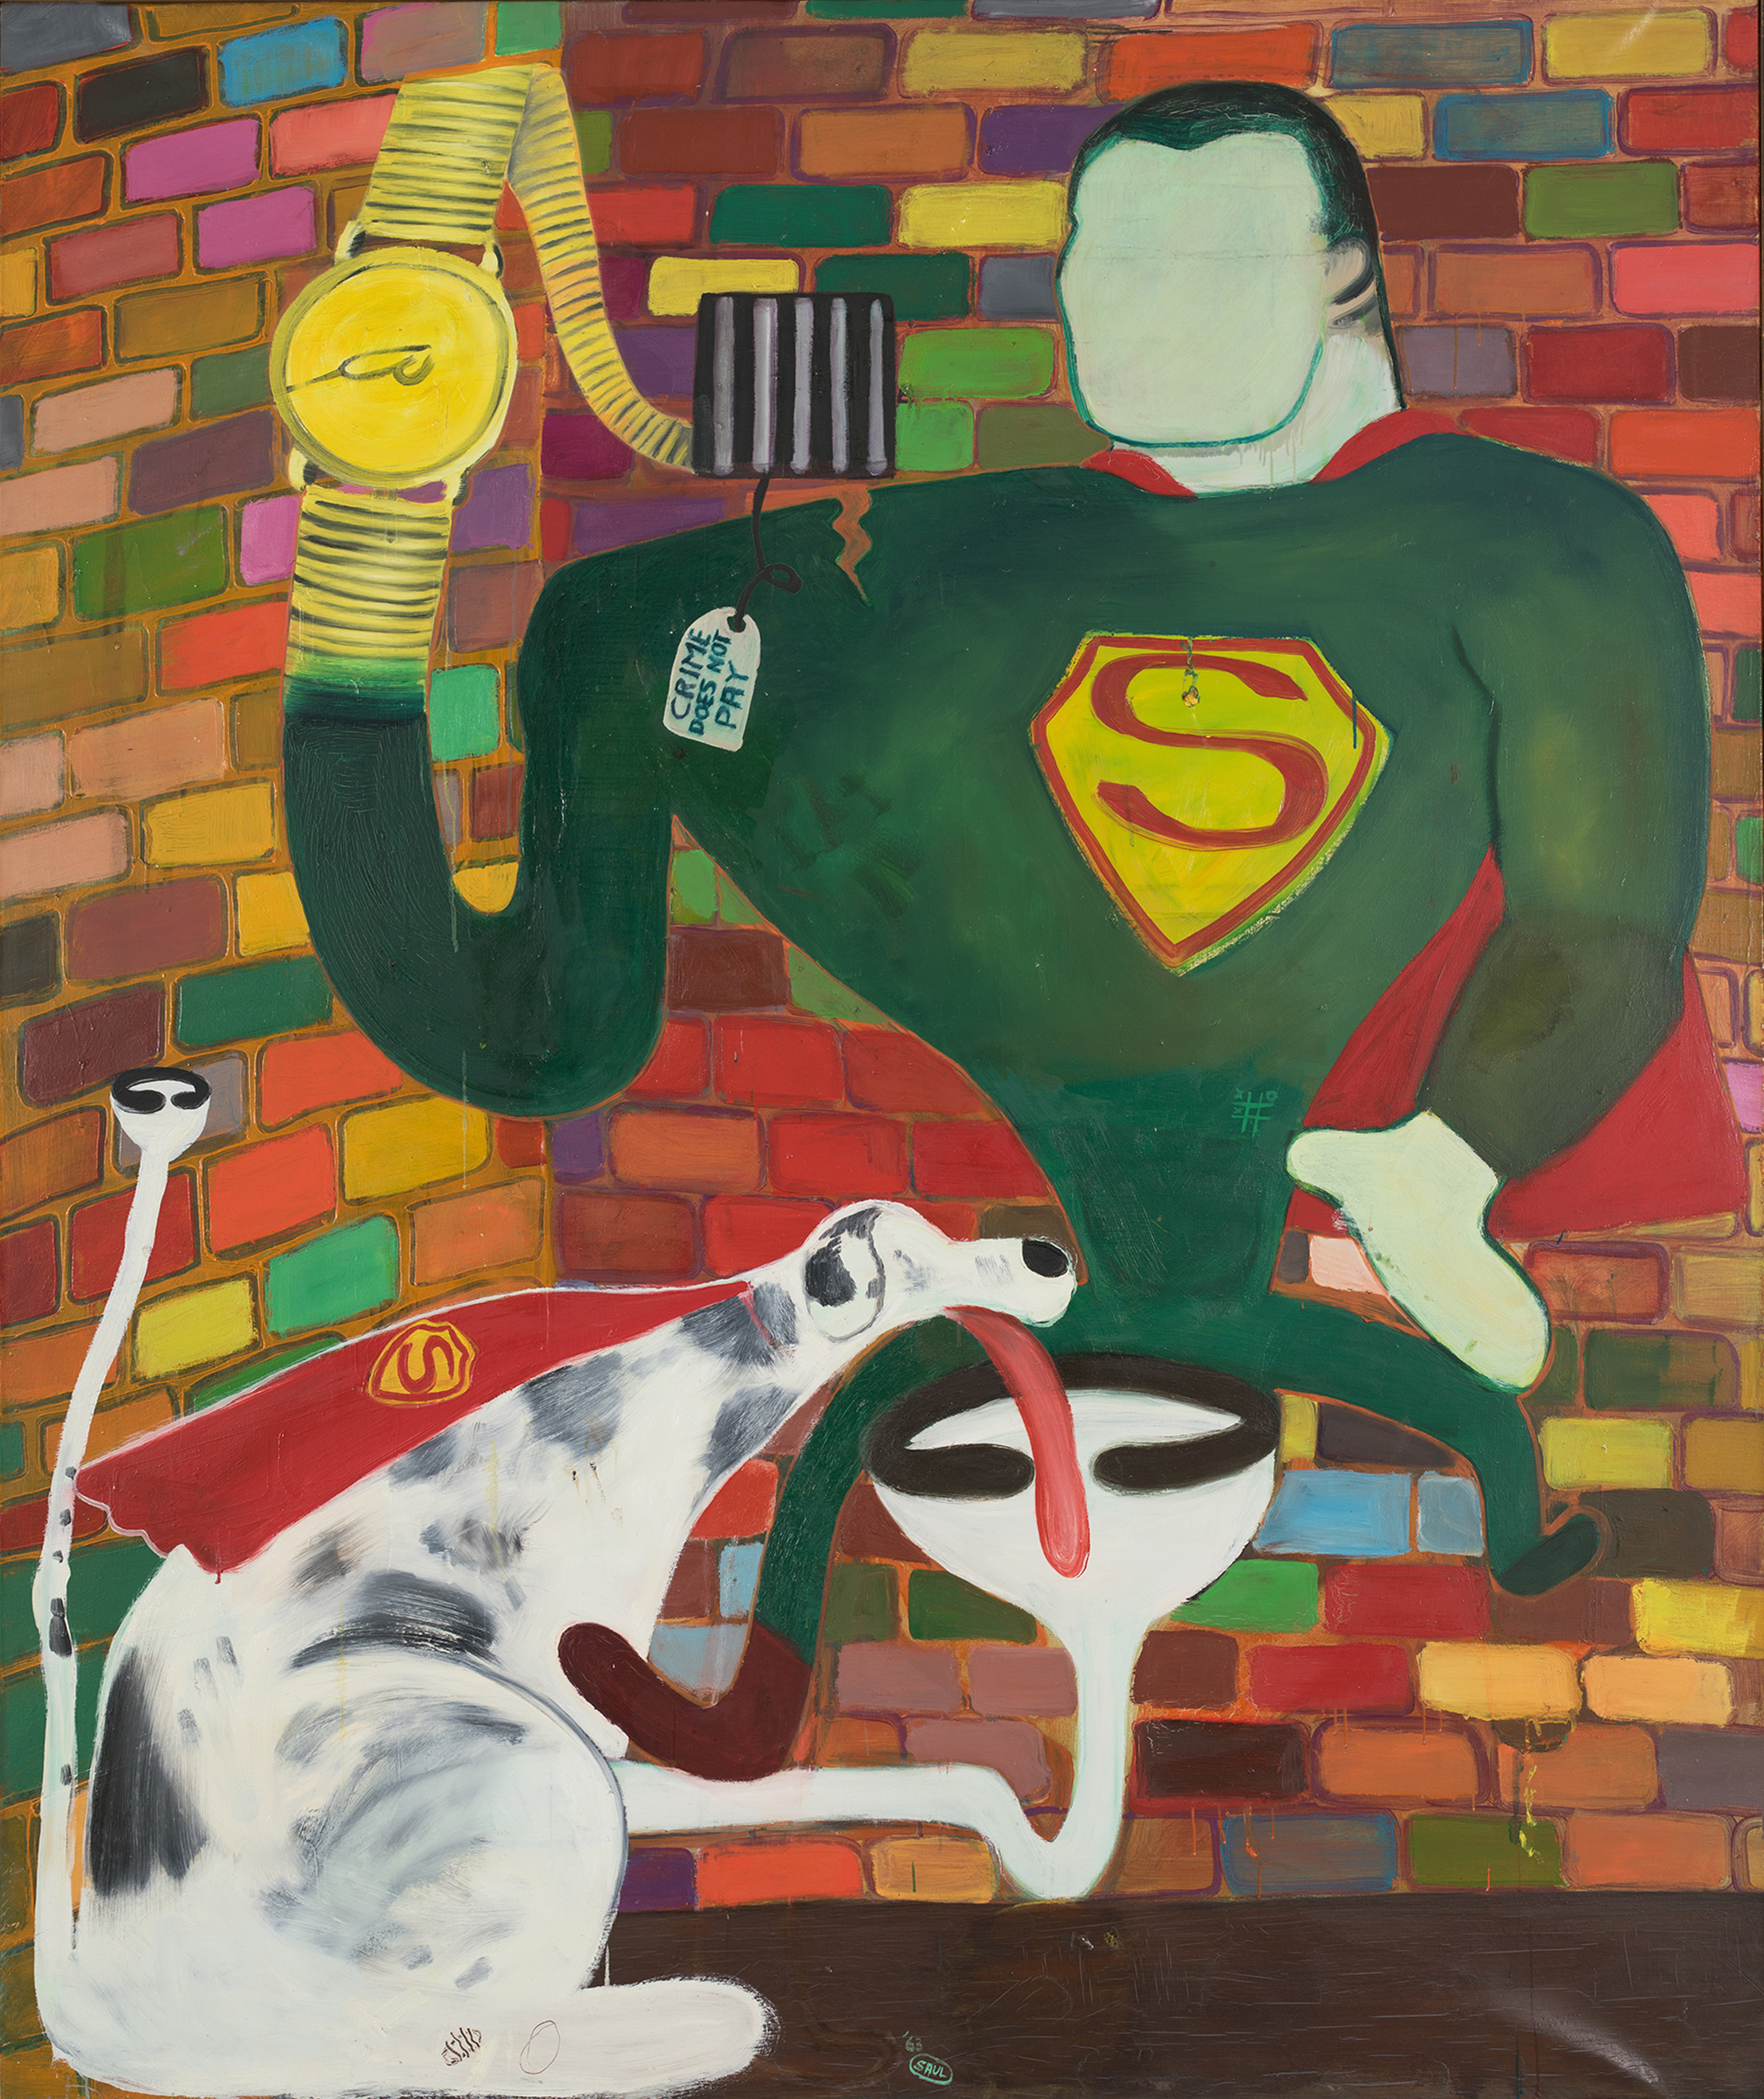 Peter Saul, Superman and Superdog in Jail, 1963 © Peter Saul, Foto: Farzad Owrang